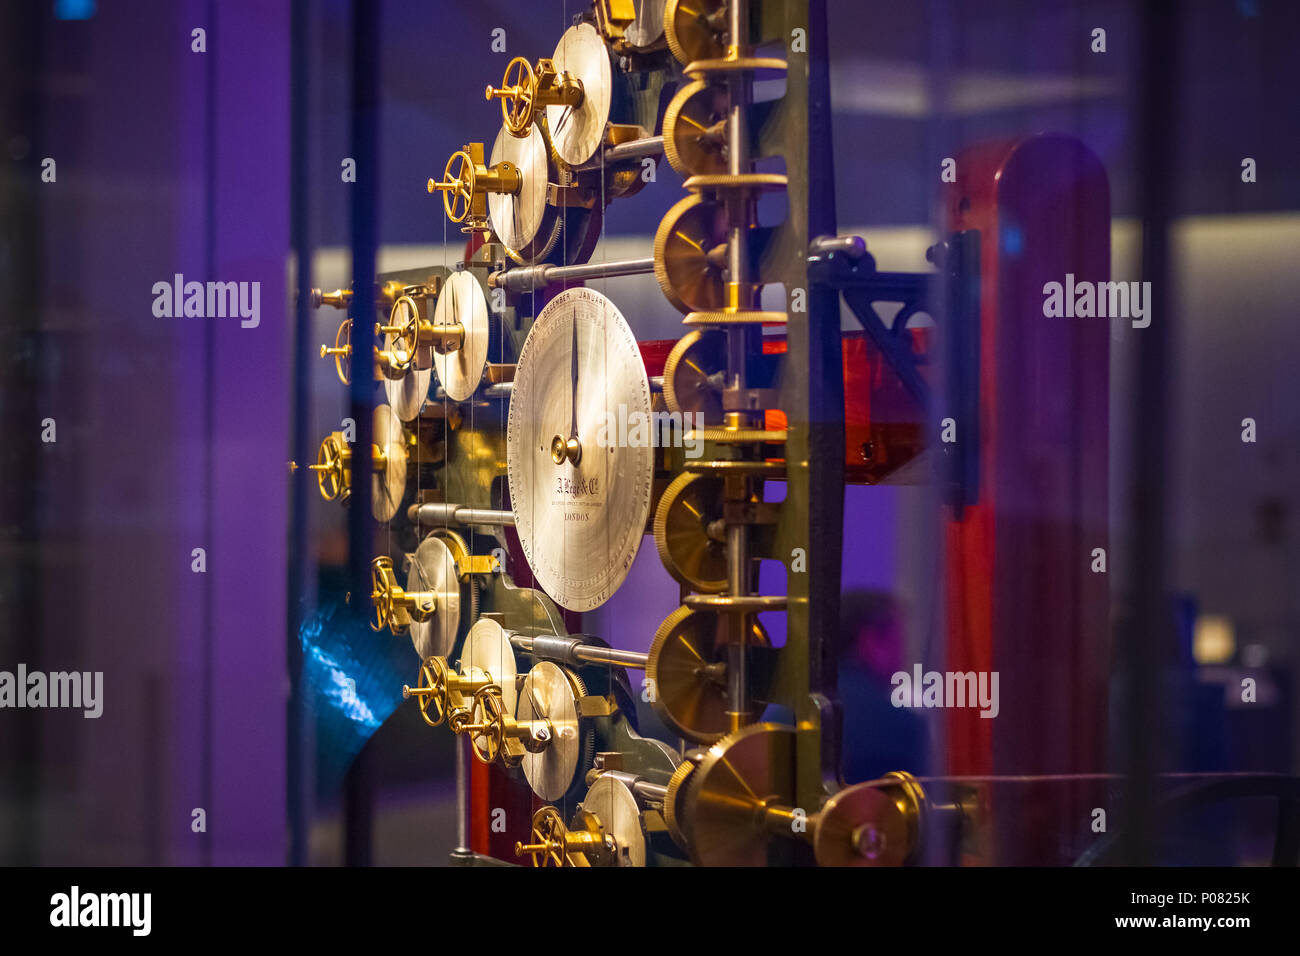 London, UK - January 17, 2018 - First tide-predicting machine on display at Science Museum - Stock Image